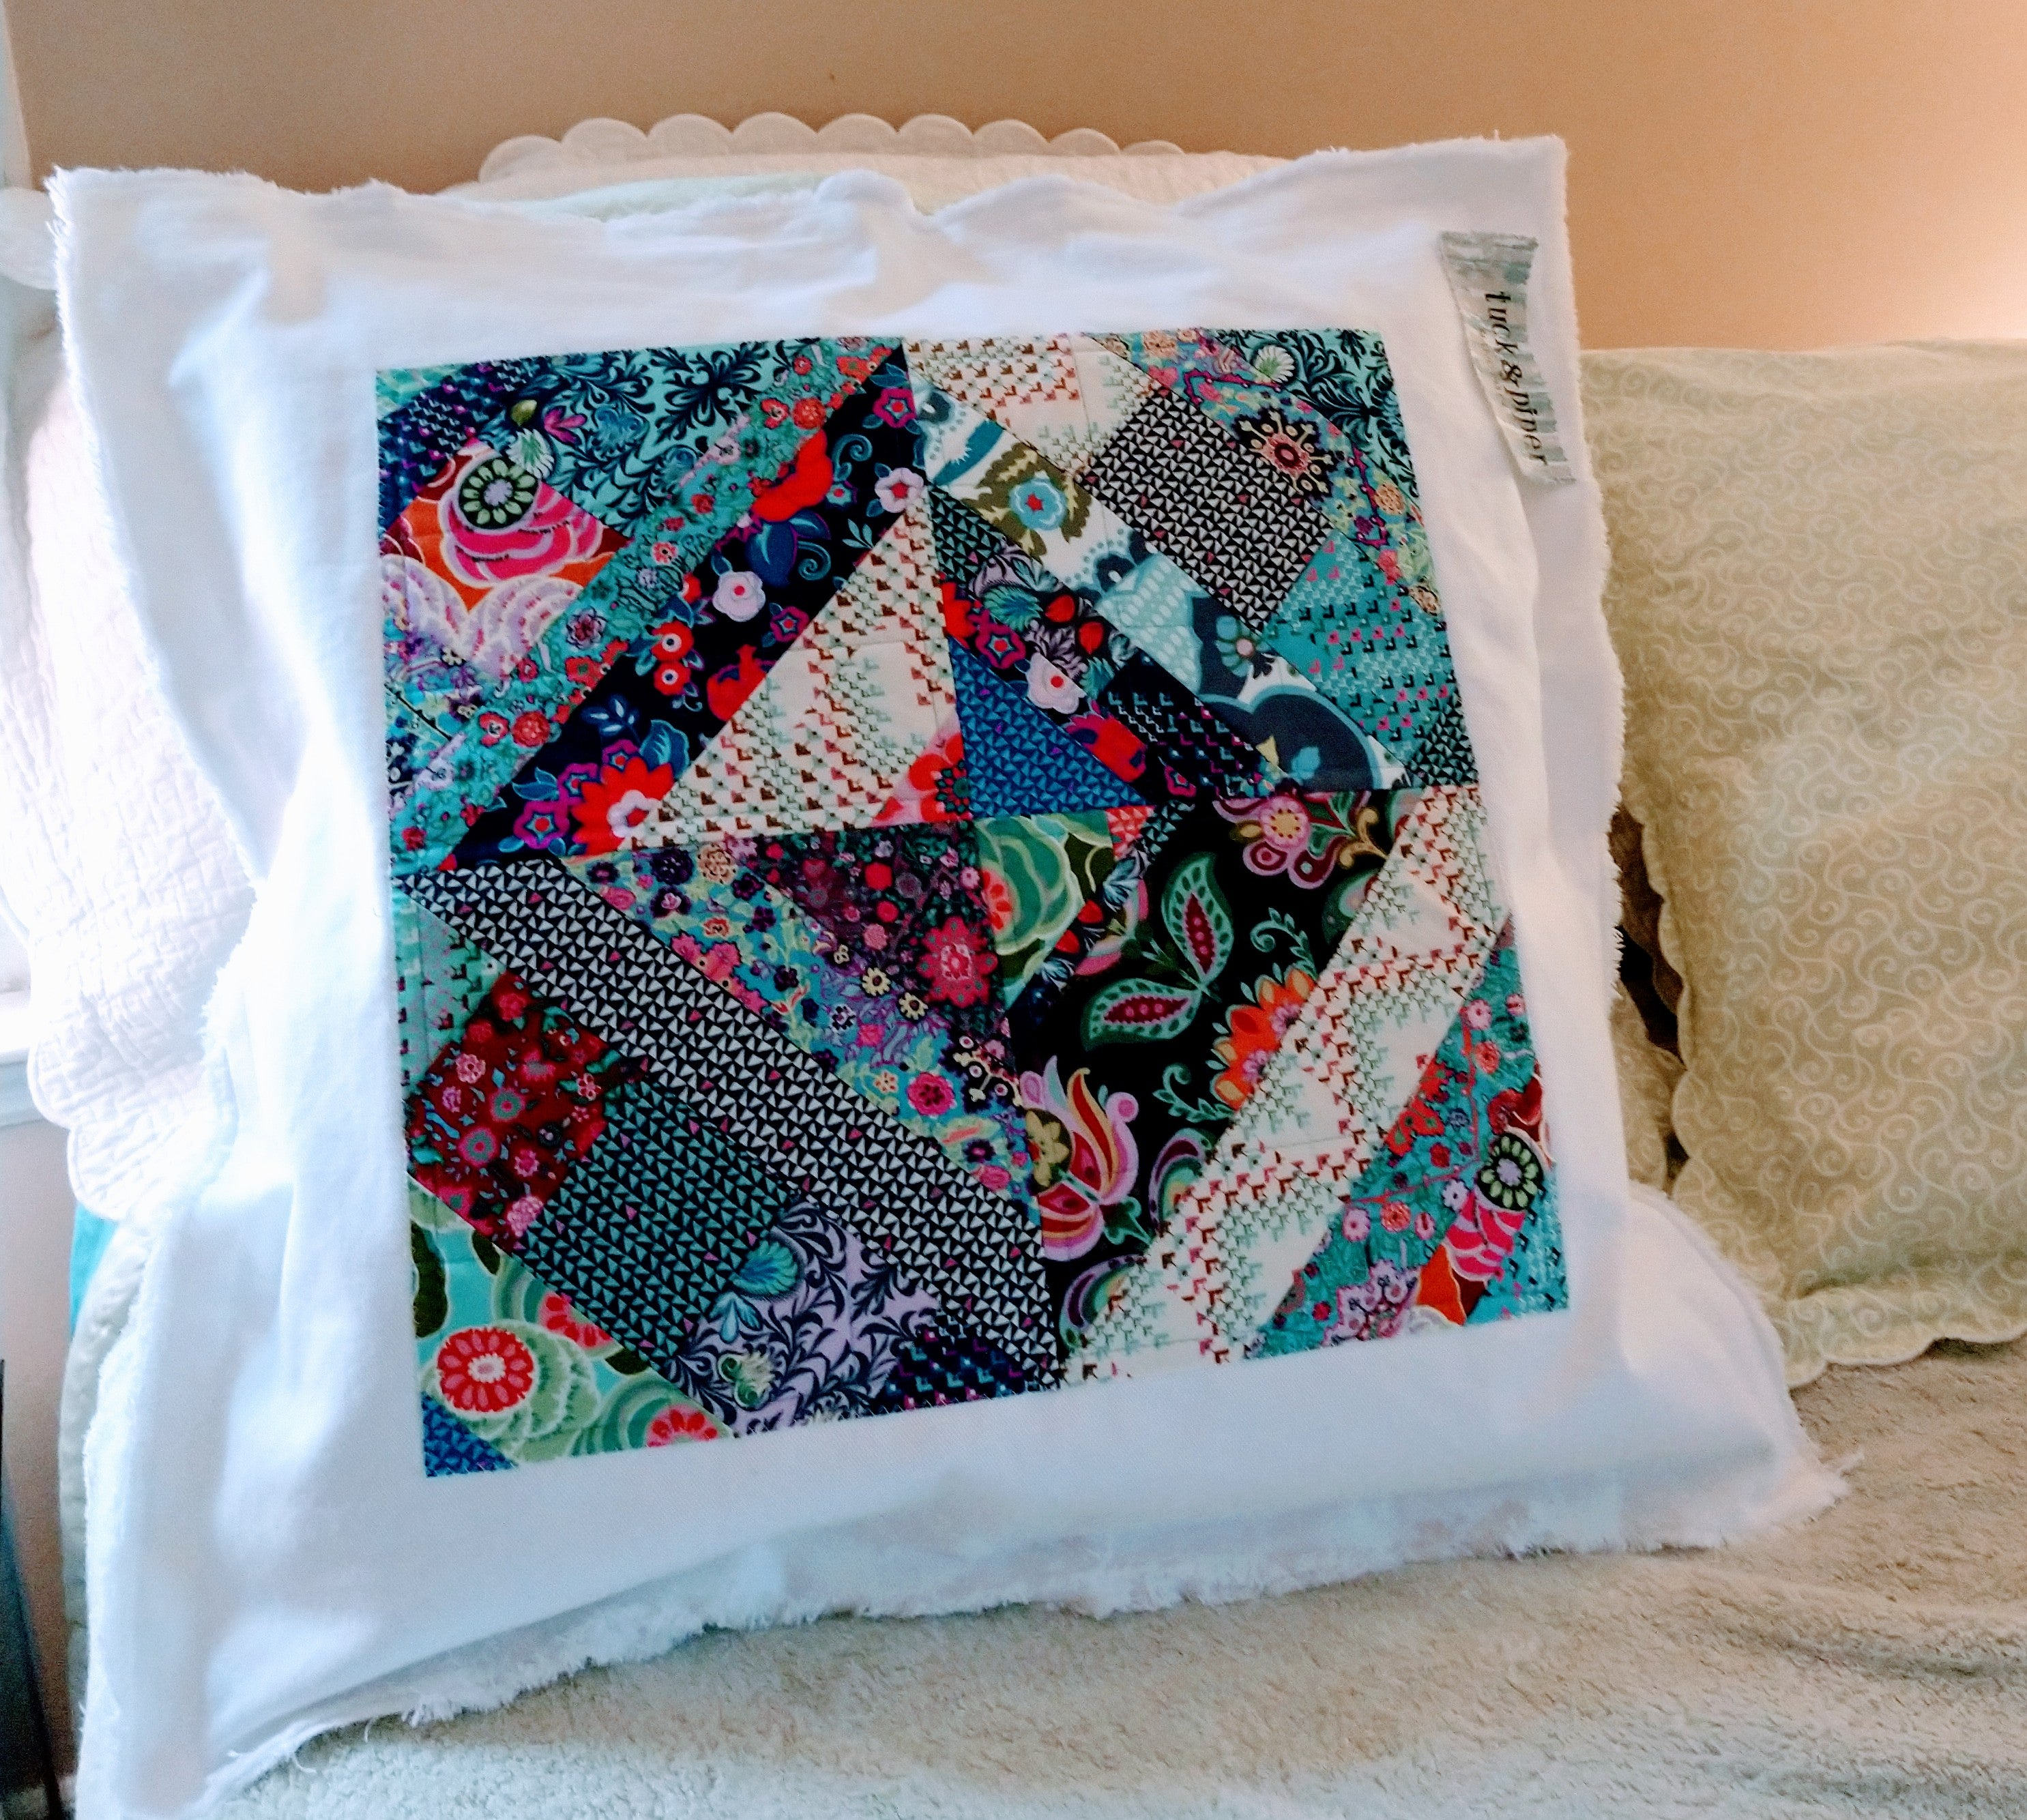 Decorative Pillow with White Denim Cover - Bohicket Road